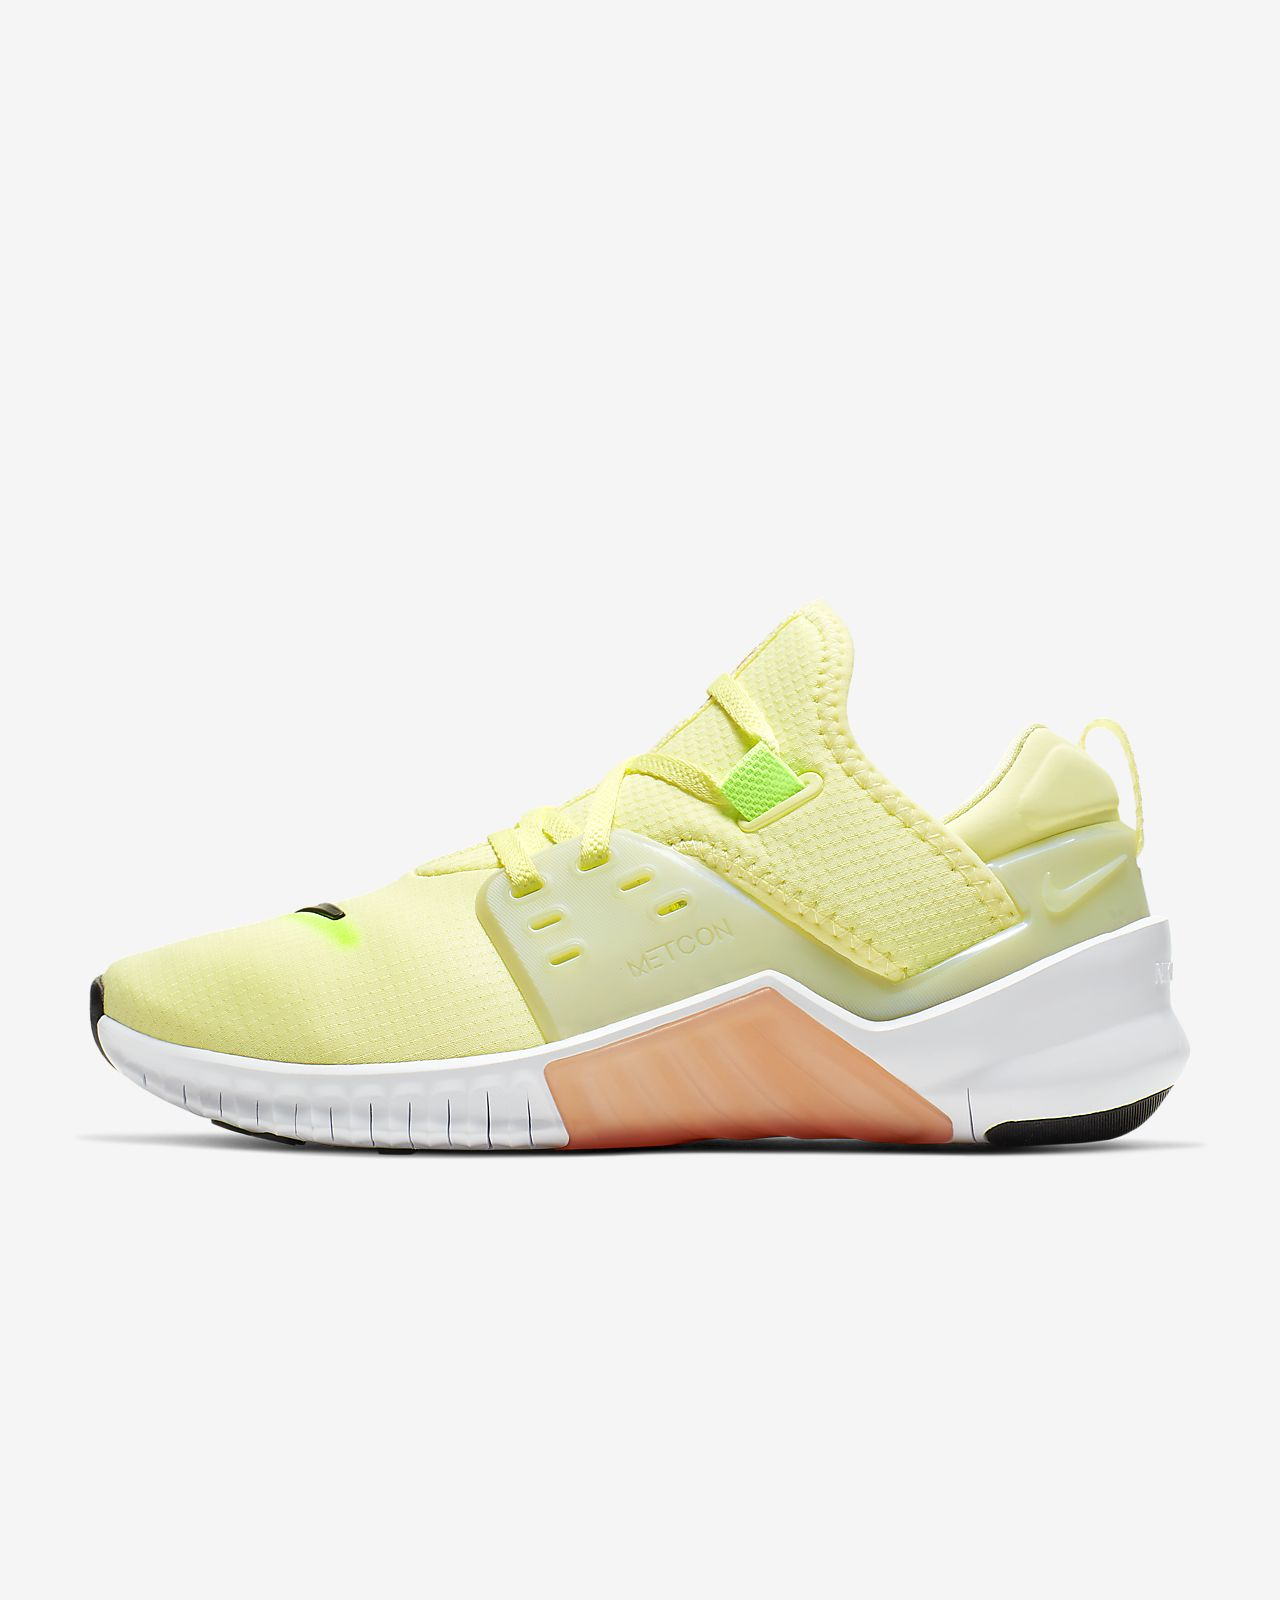 Nike Free Metcon 2 AMP Women's Training Shoe